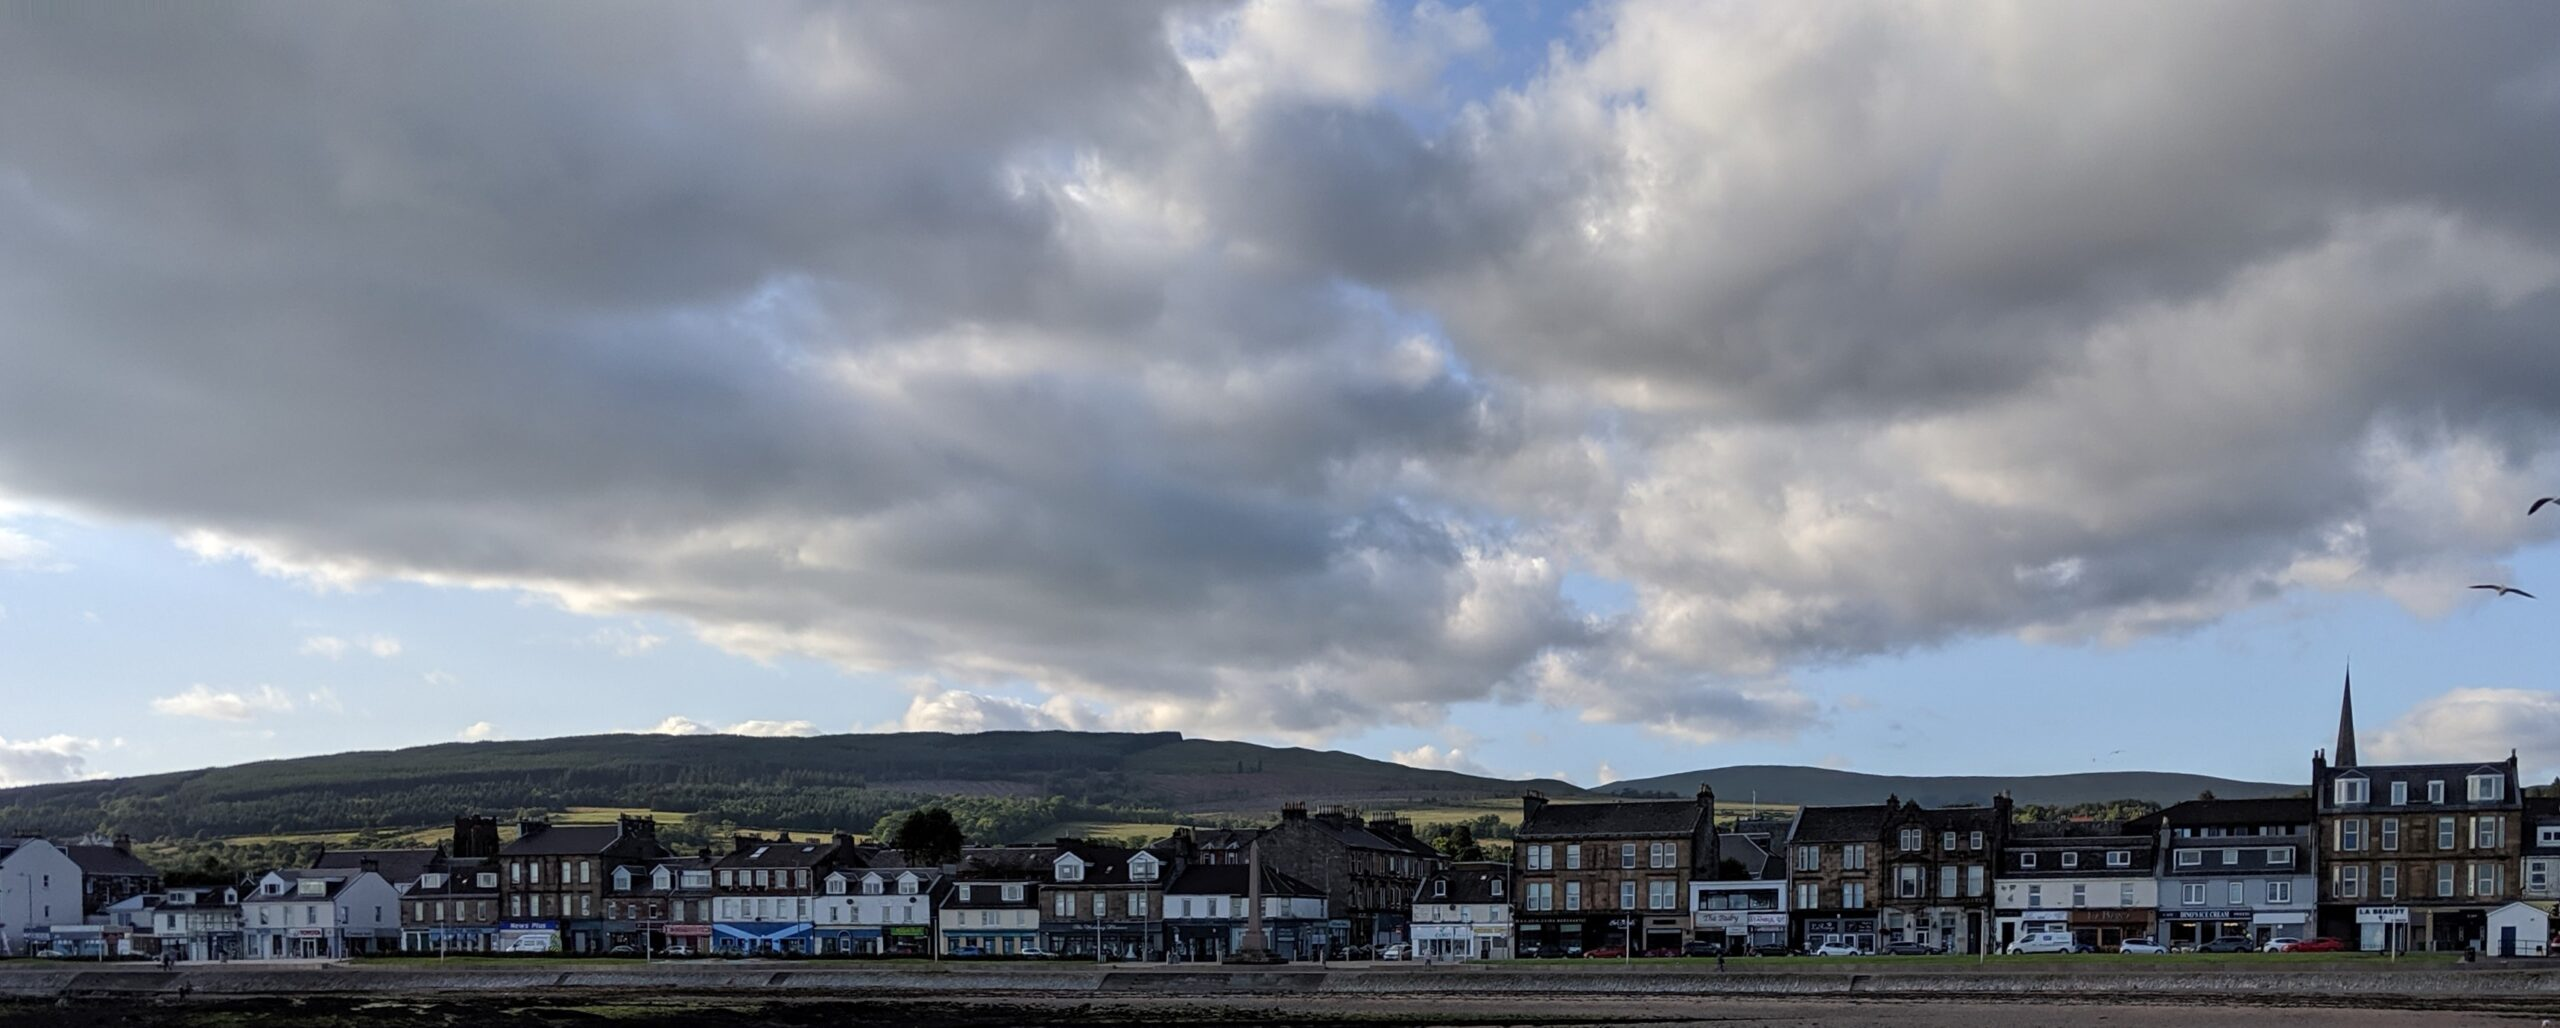 Panoramic view of the resort town from a distance between the Firth of Clyde and the Scottish Highlands rising behind the town.